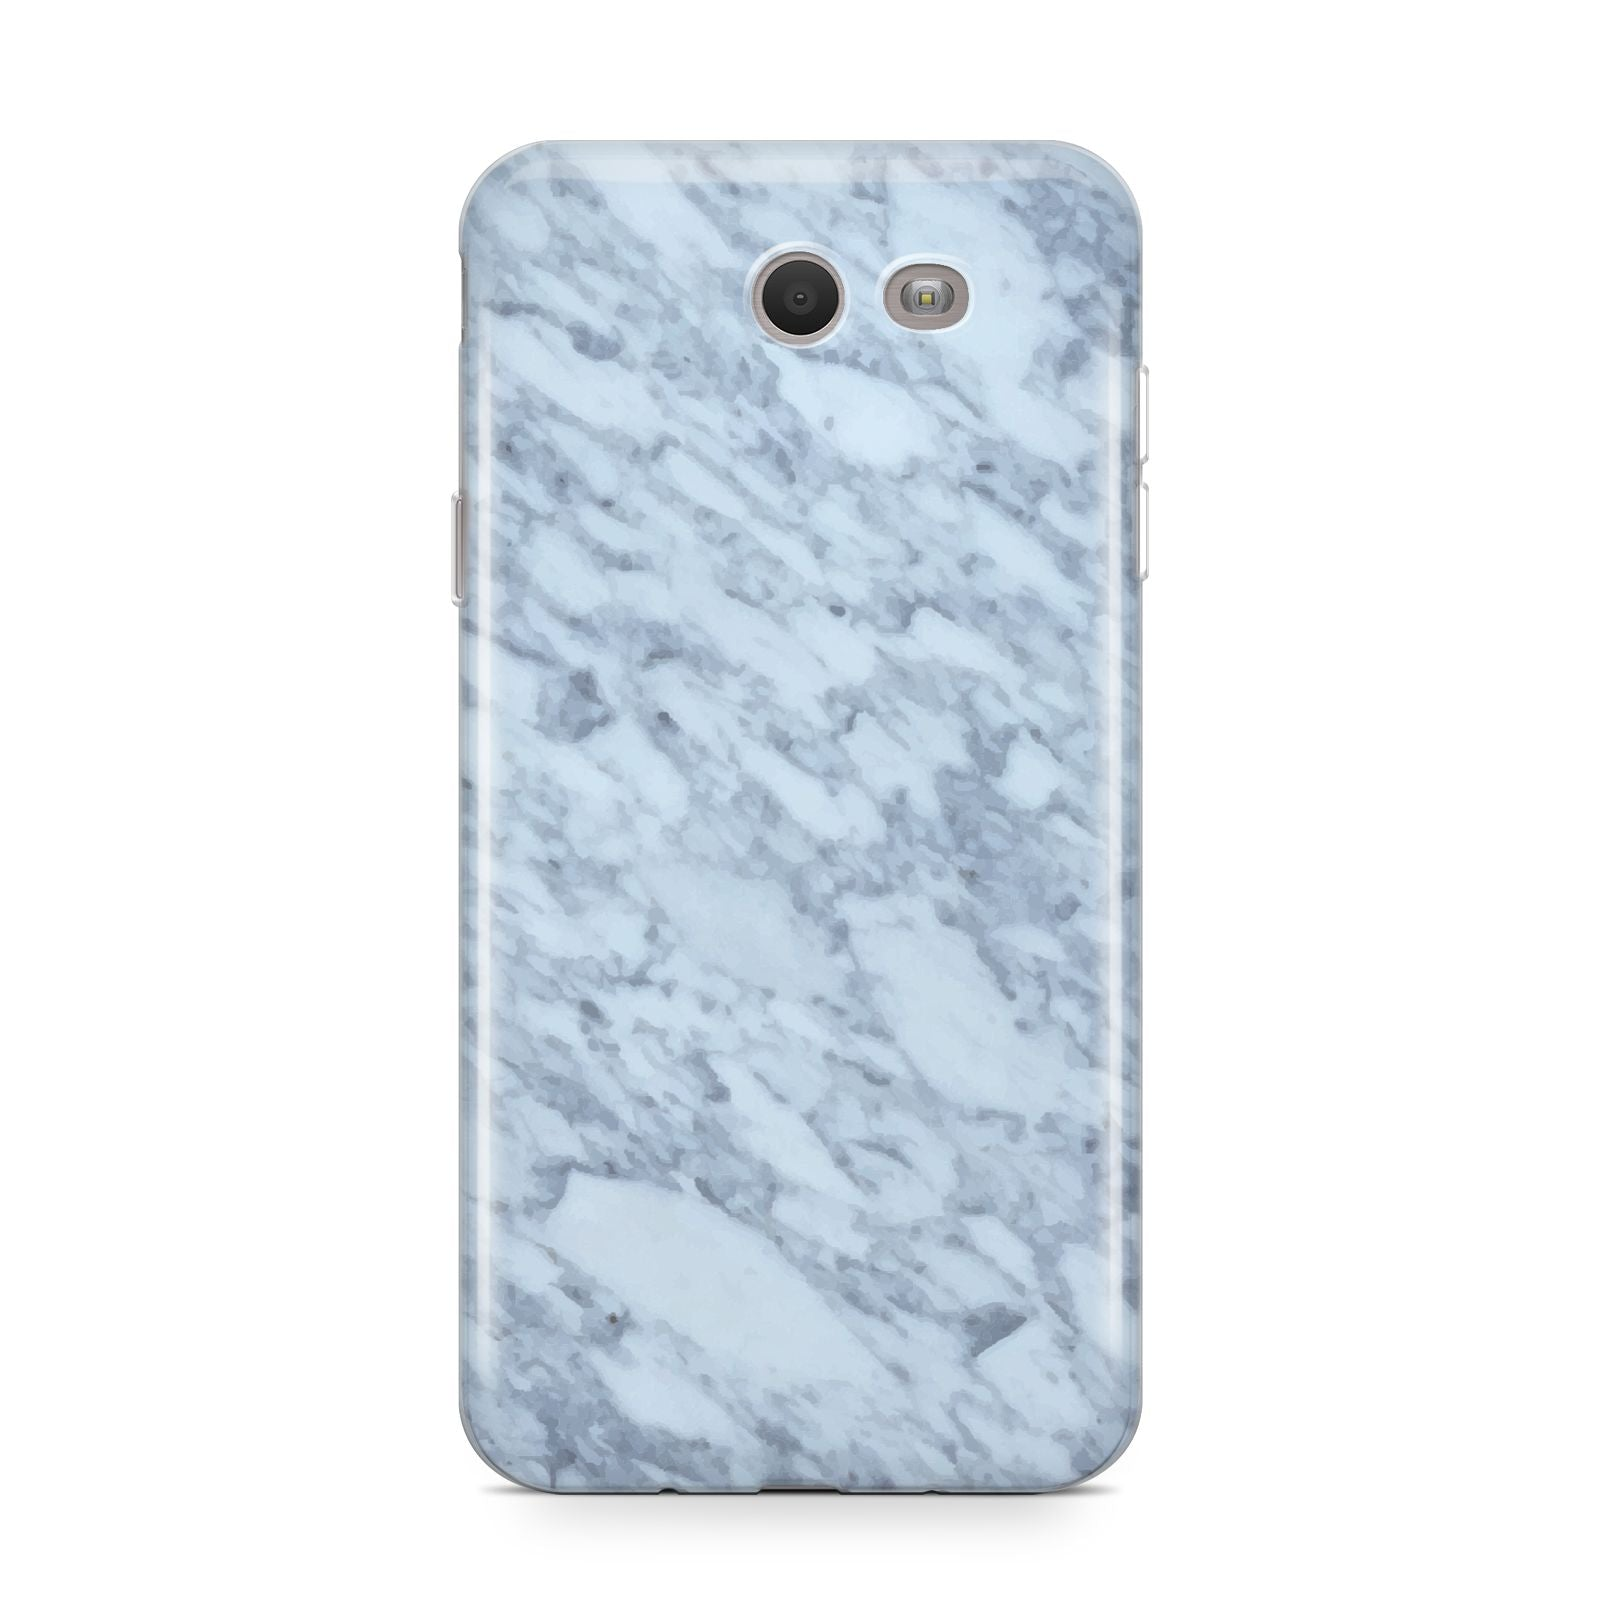 Faux Marble Grey 2 Samsung Galaxy J7 2017 Case